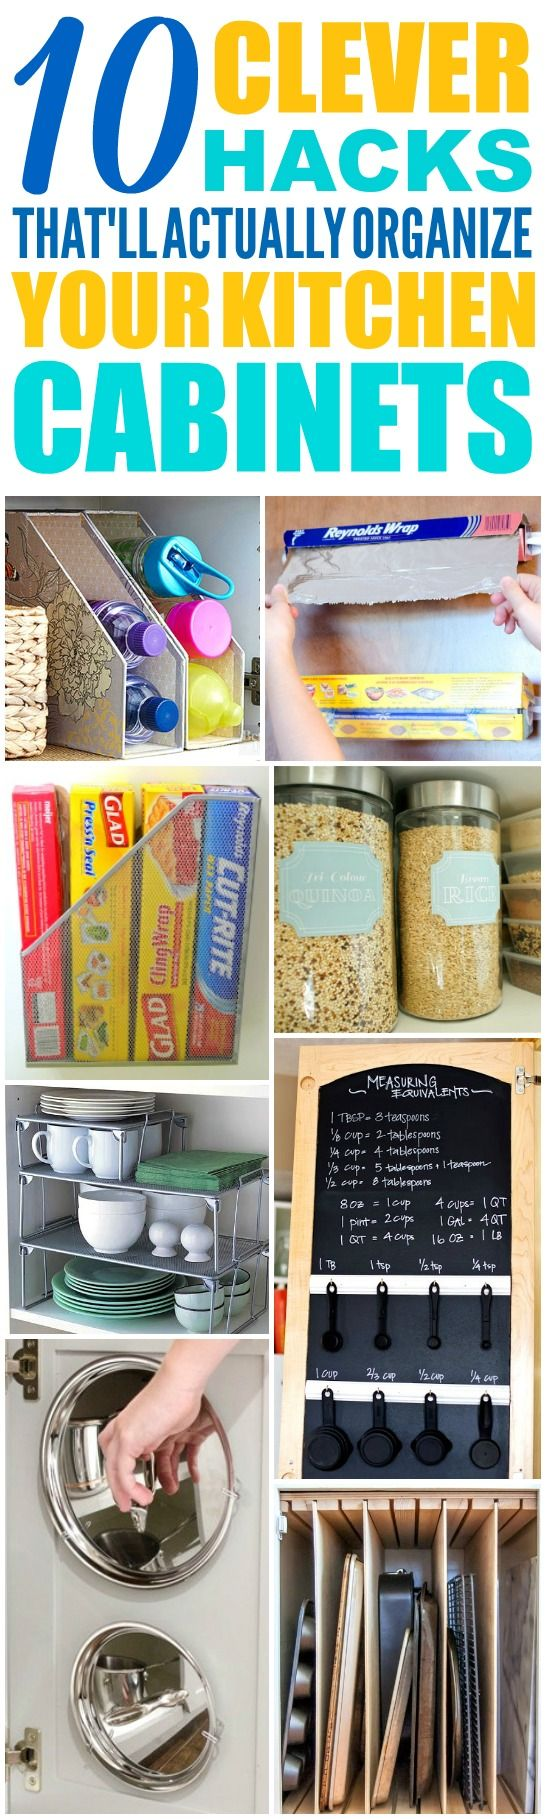 10 kitchen cabinet hacks thatu0027ll keep things super organized